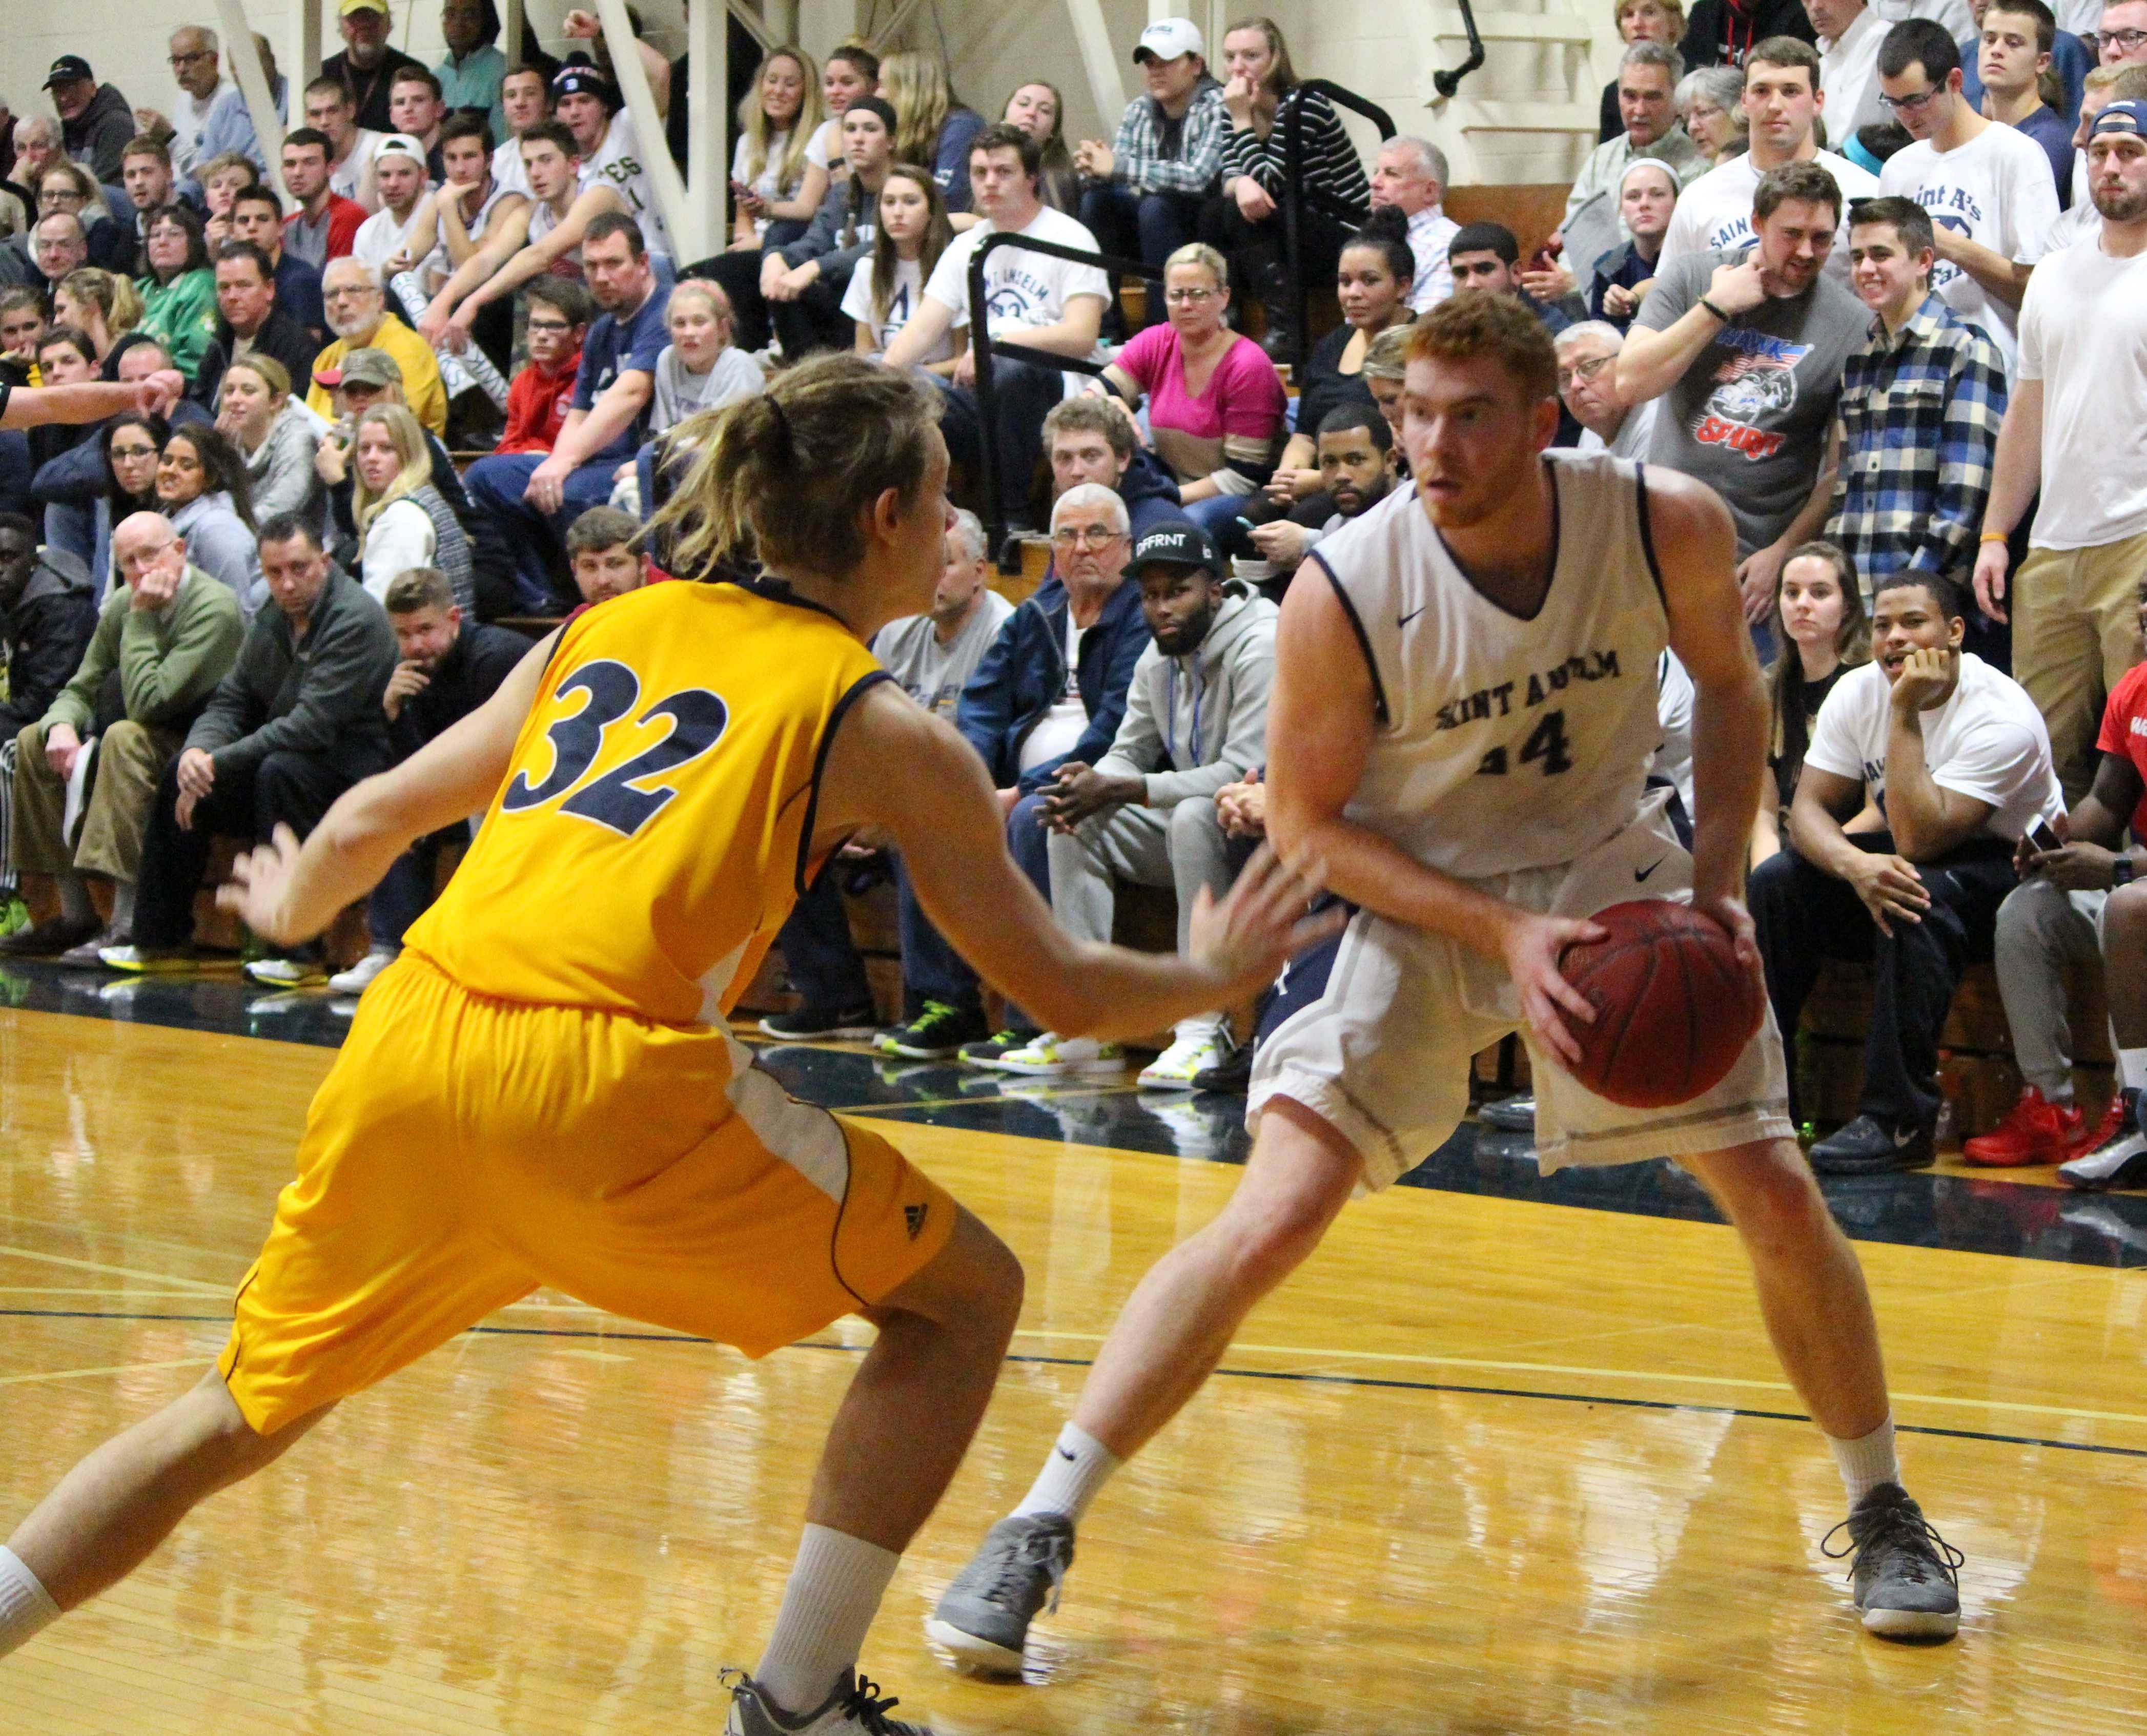 Harrison Taggart on the court for St. A's during the season opener against SNHU.